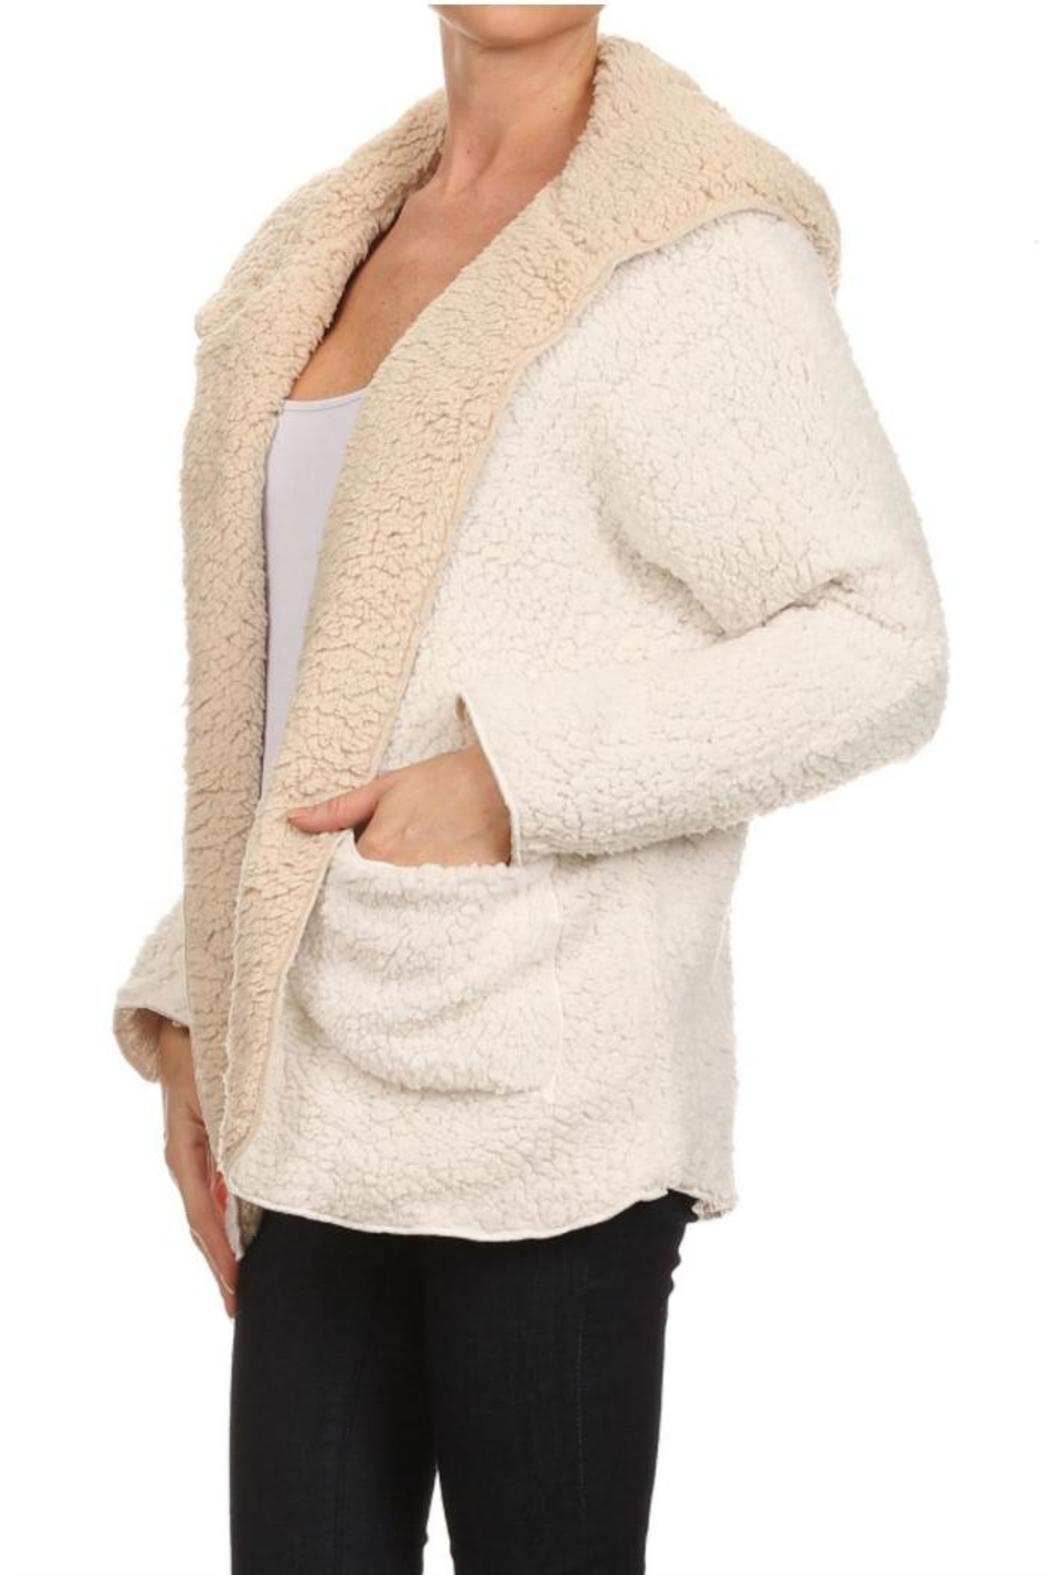 Mystree Cozy Hooded Sweater from Virginia Beach by A. Dodson's ...